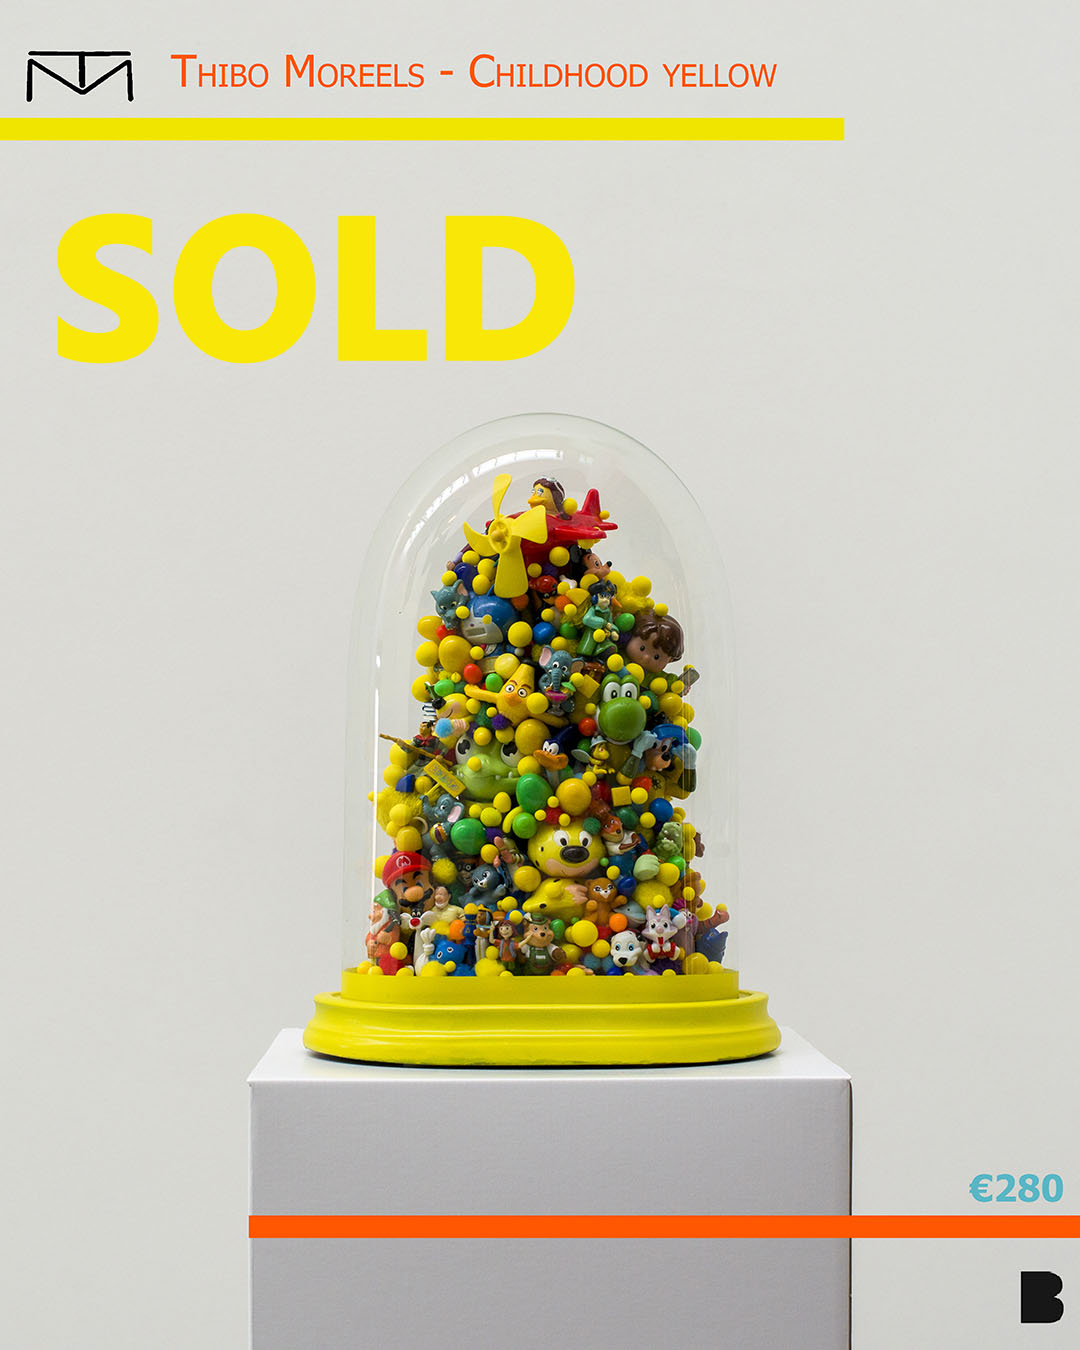 Childhood yellow 280-SOLD.jpg